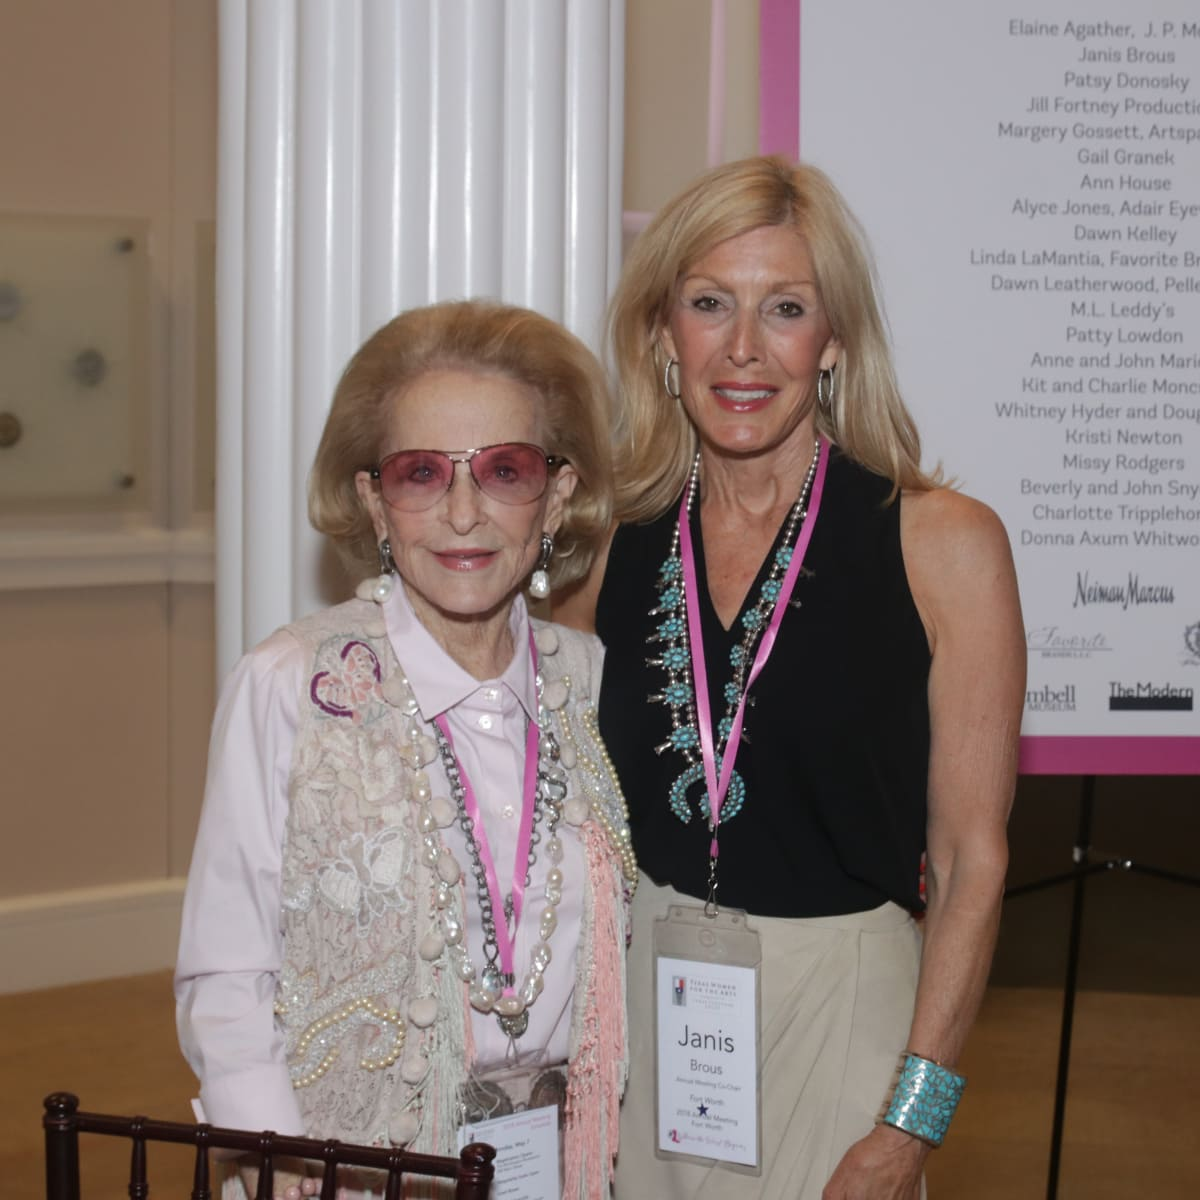 Texas Women for the Arts, Nancy Dedman (Dallas) and Janis Brous (TWA Annual Meeting Co-Chair, Fort Worth)